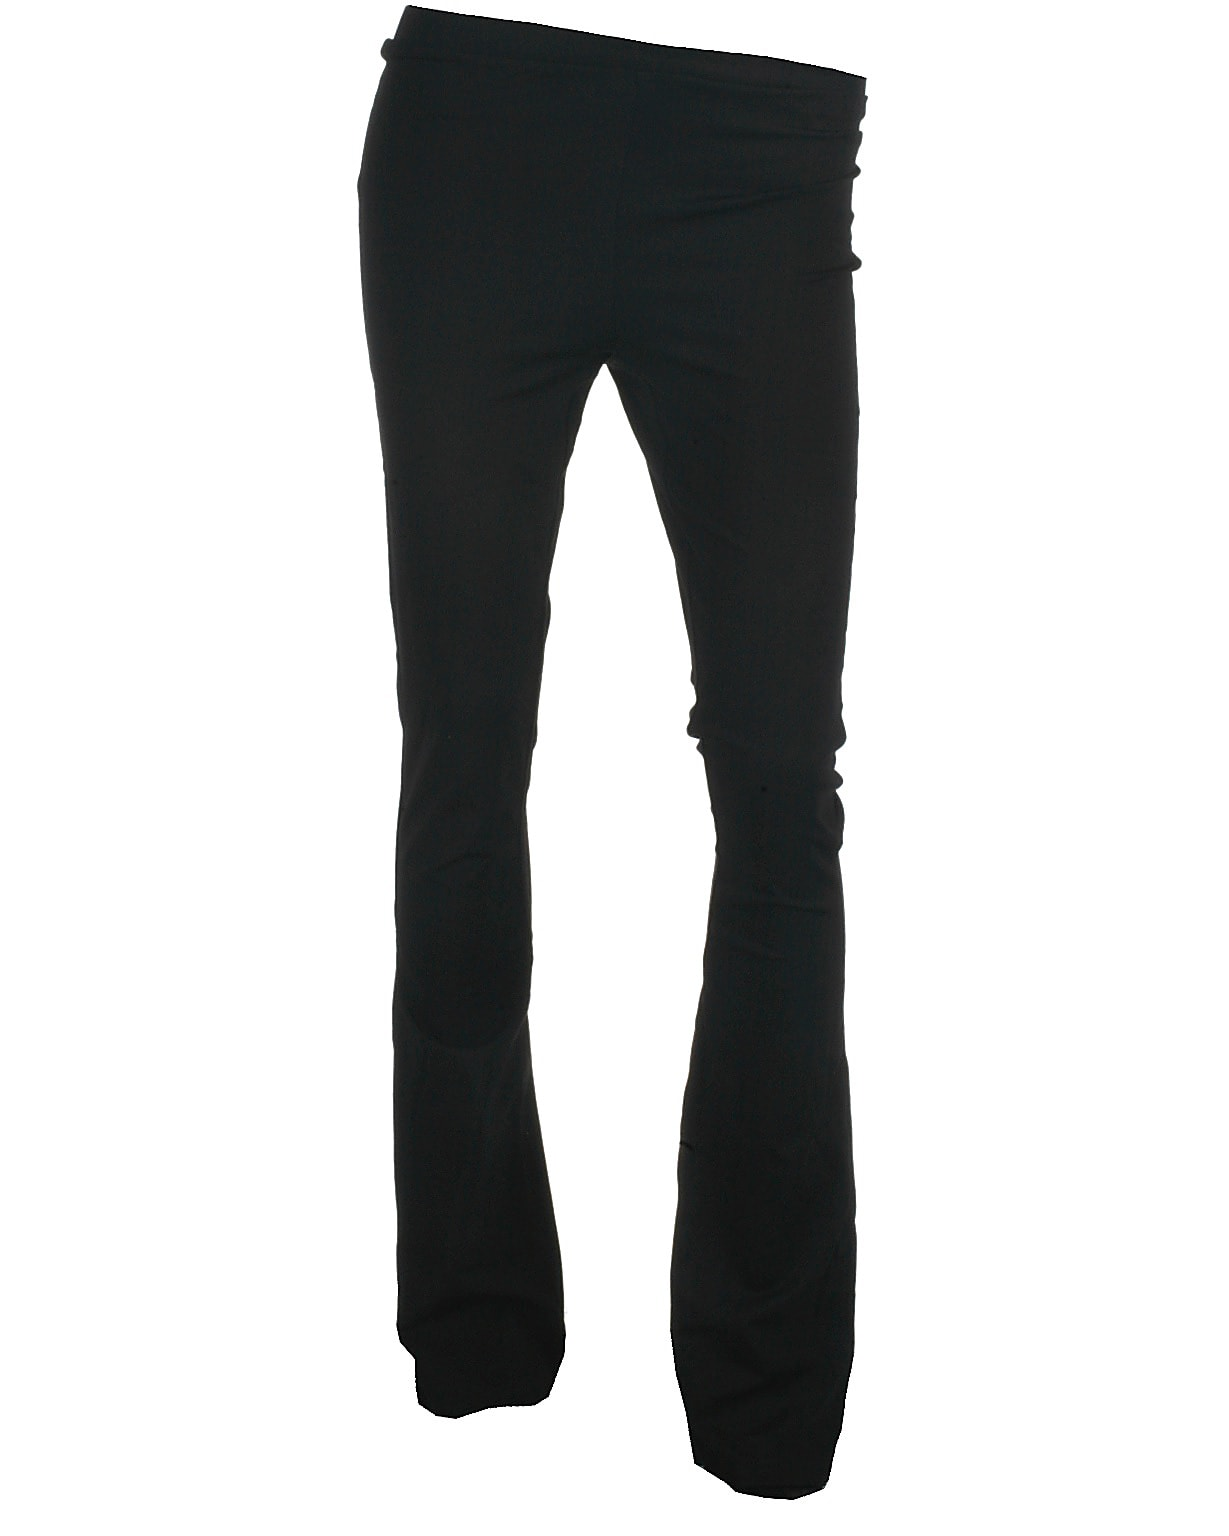 Image of LMTD bootcut pant, sort, Donna